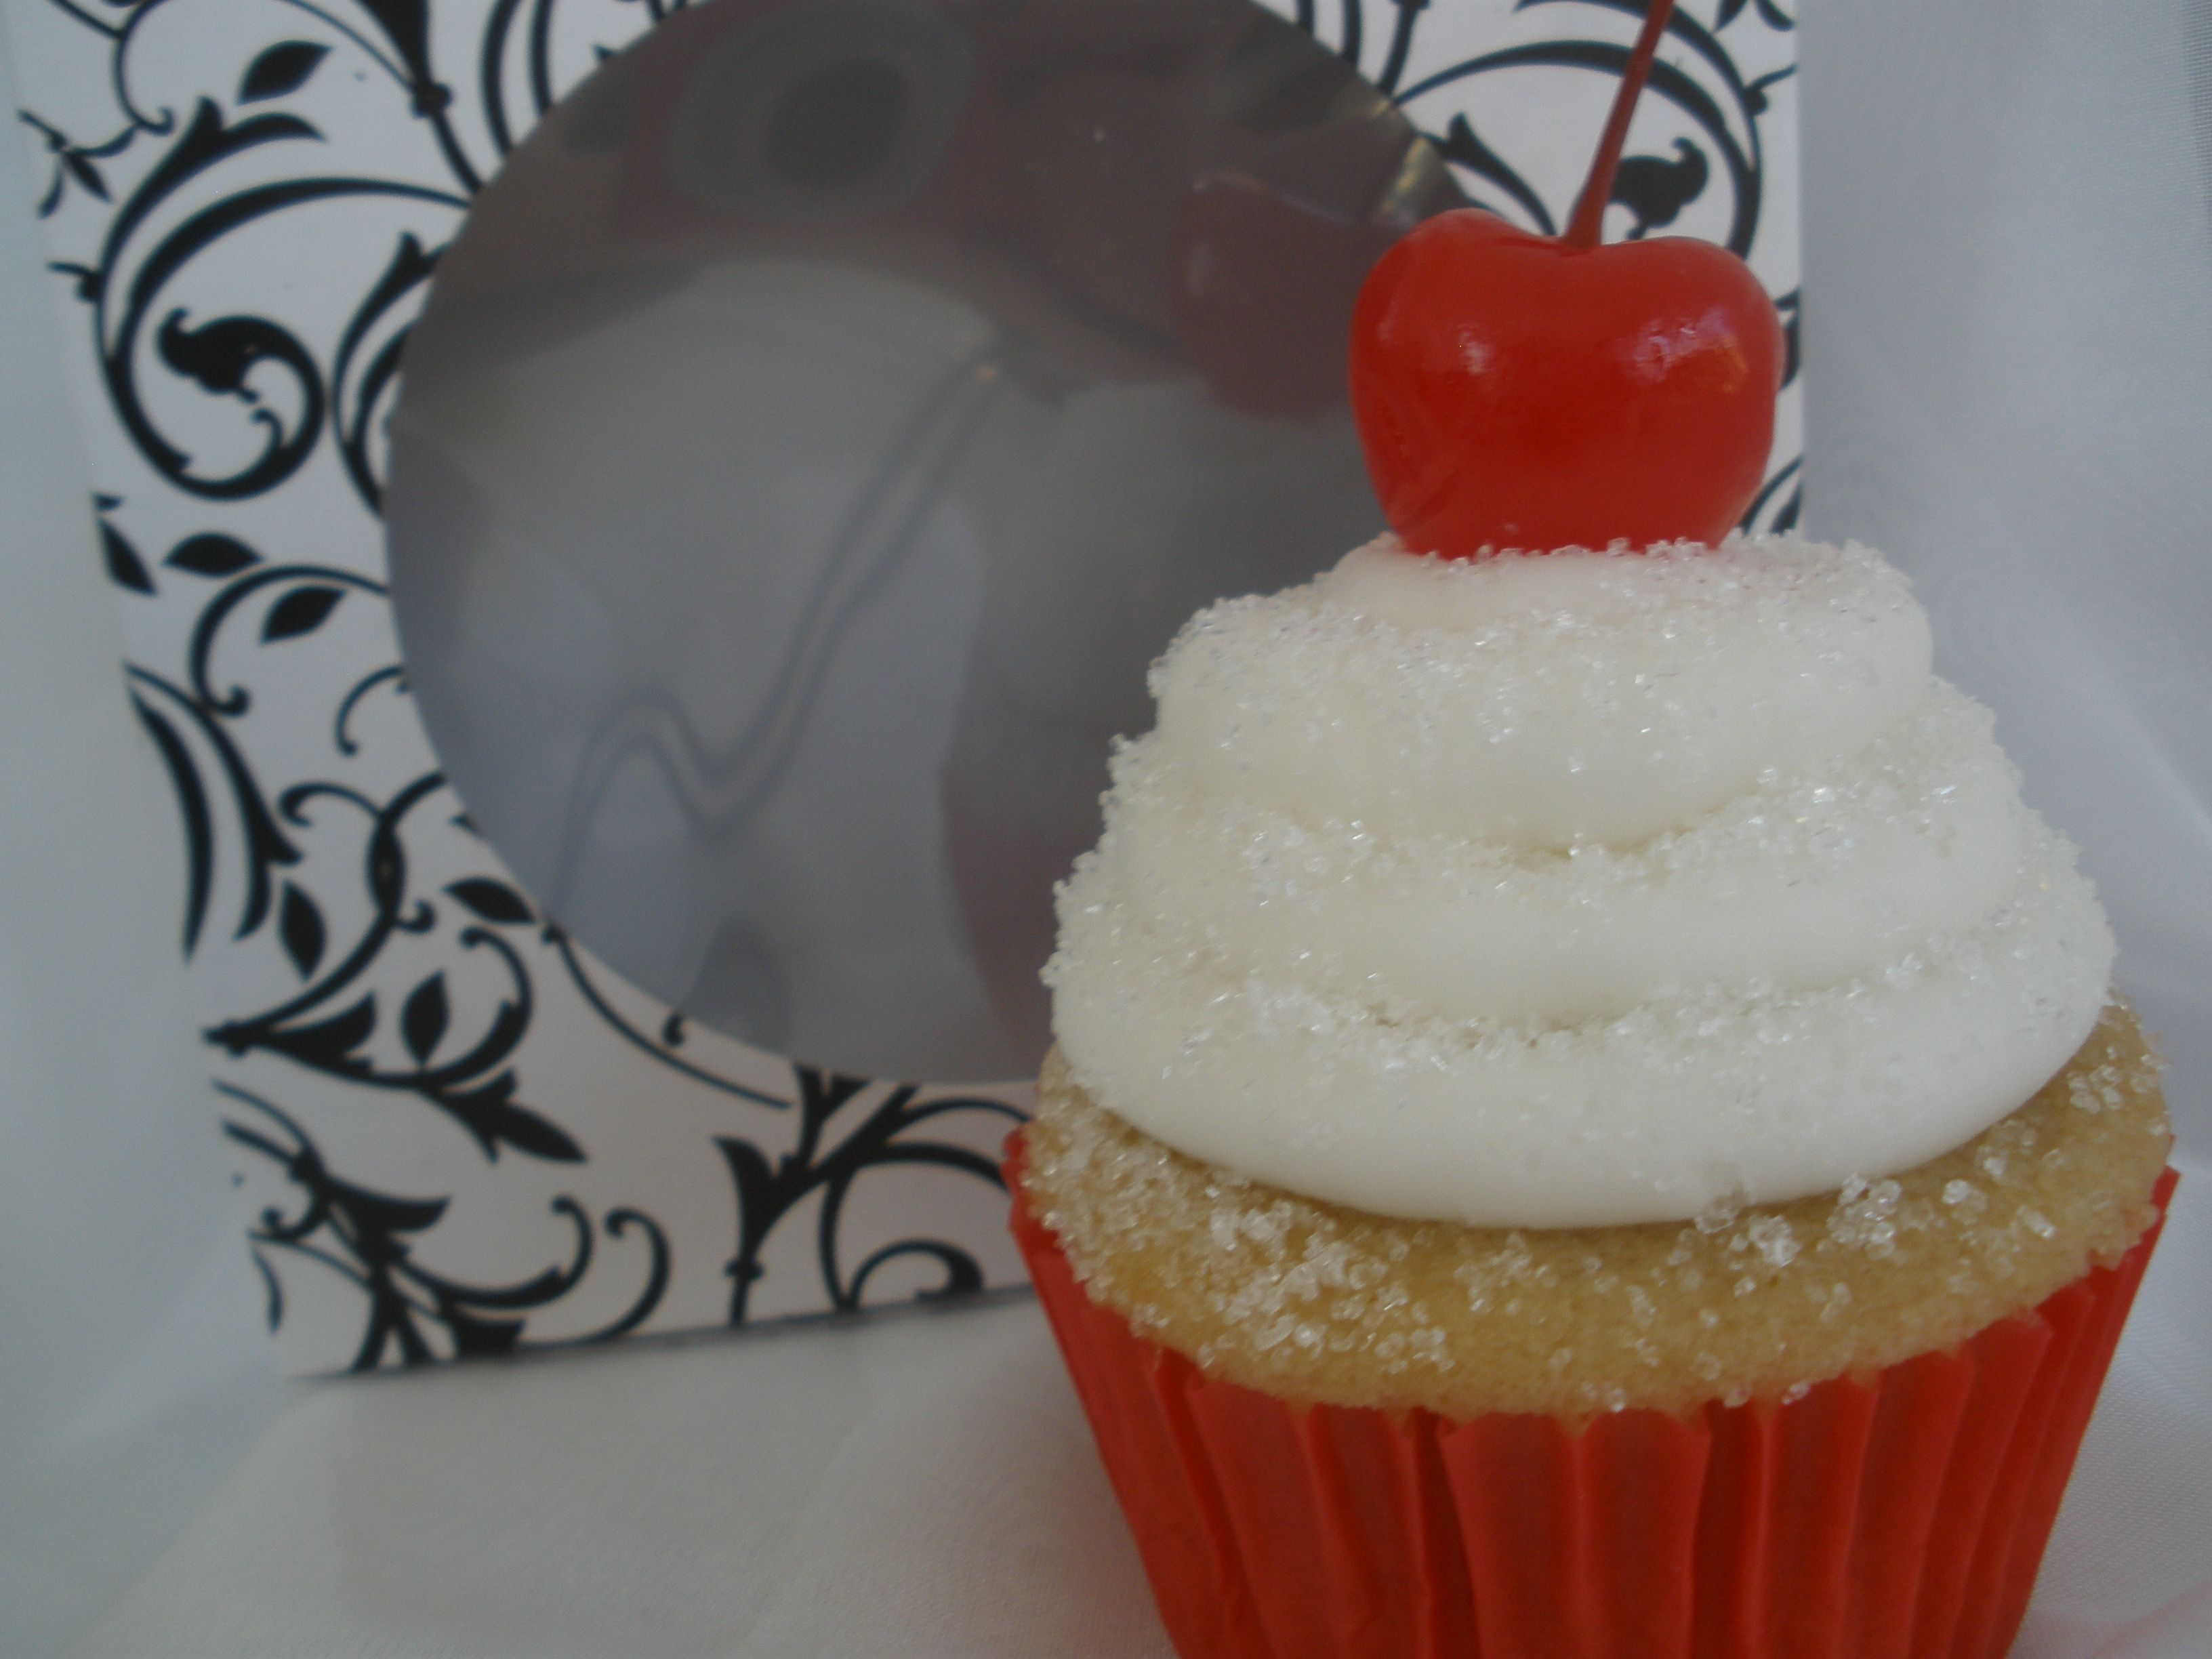 Vanilla Cupcake stuffed with a Hershey kiss and topped with vanilla buttercreme with sprinkled sugar and a cherry.